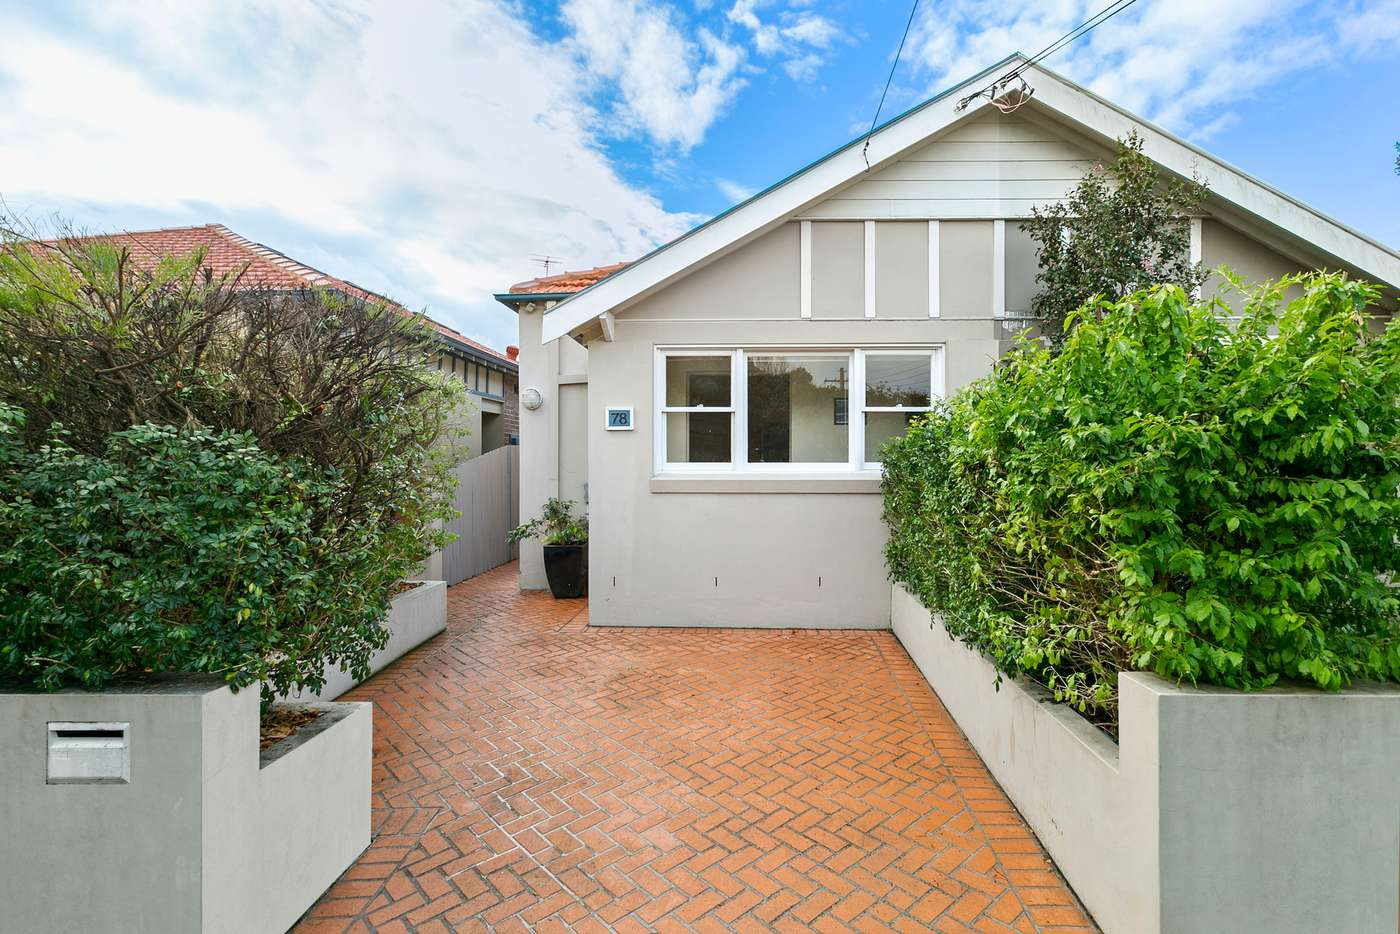 Main view of Homely house listing, 78 Paine Street, Maroubra NSW 2035